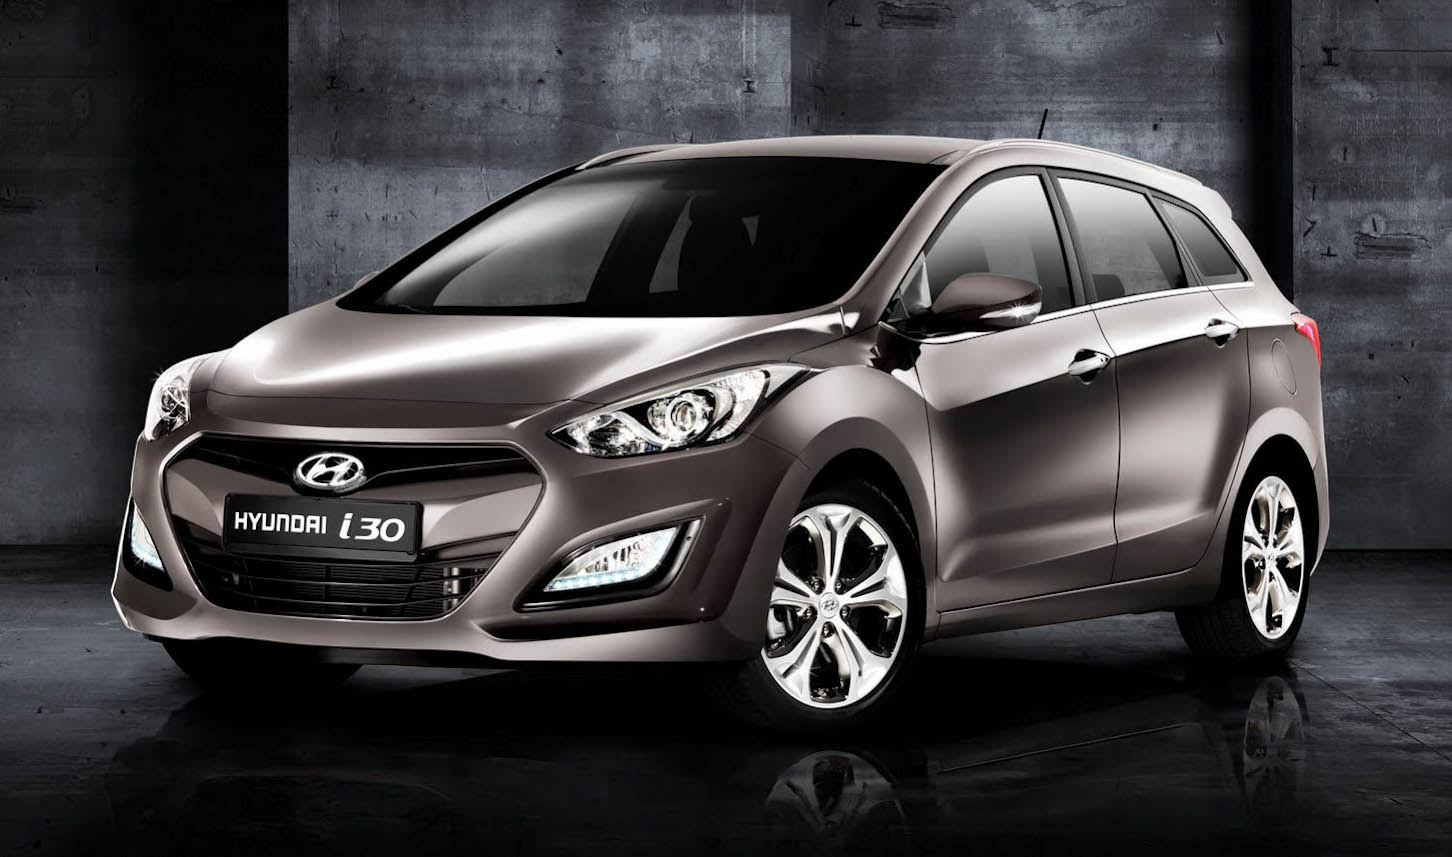 Hyundai i30 to be the next game changer as per Gaadicom